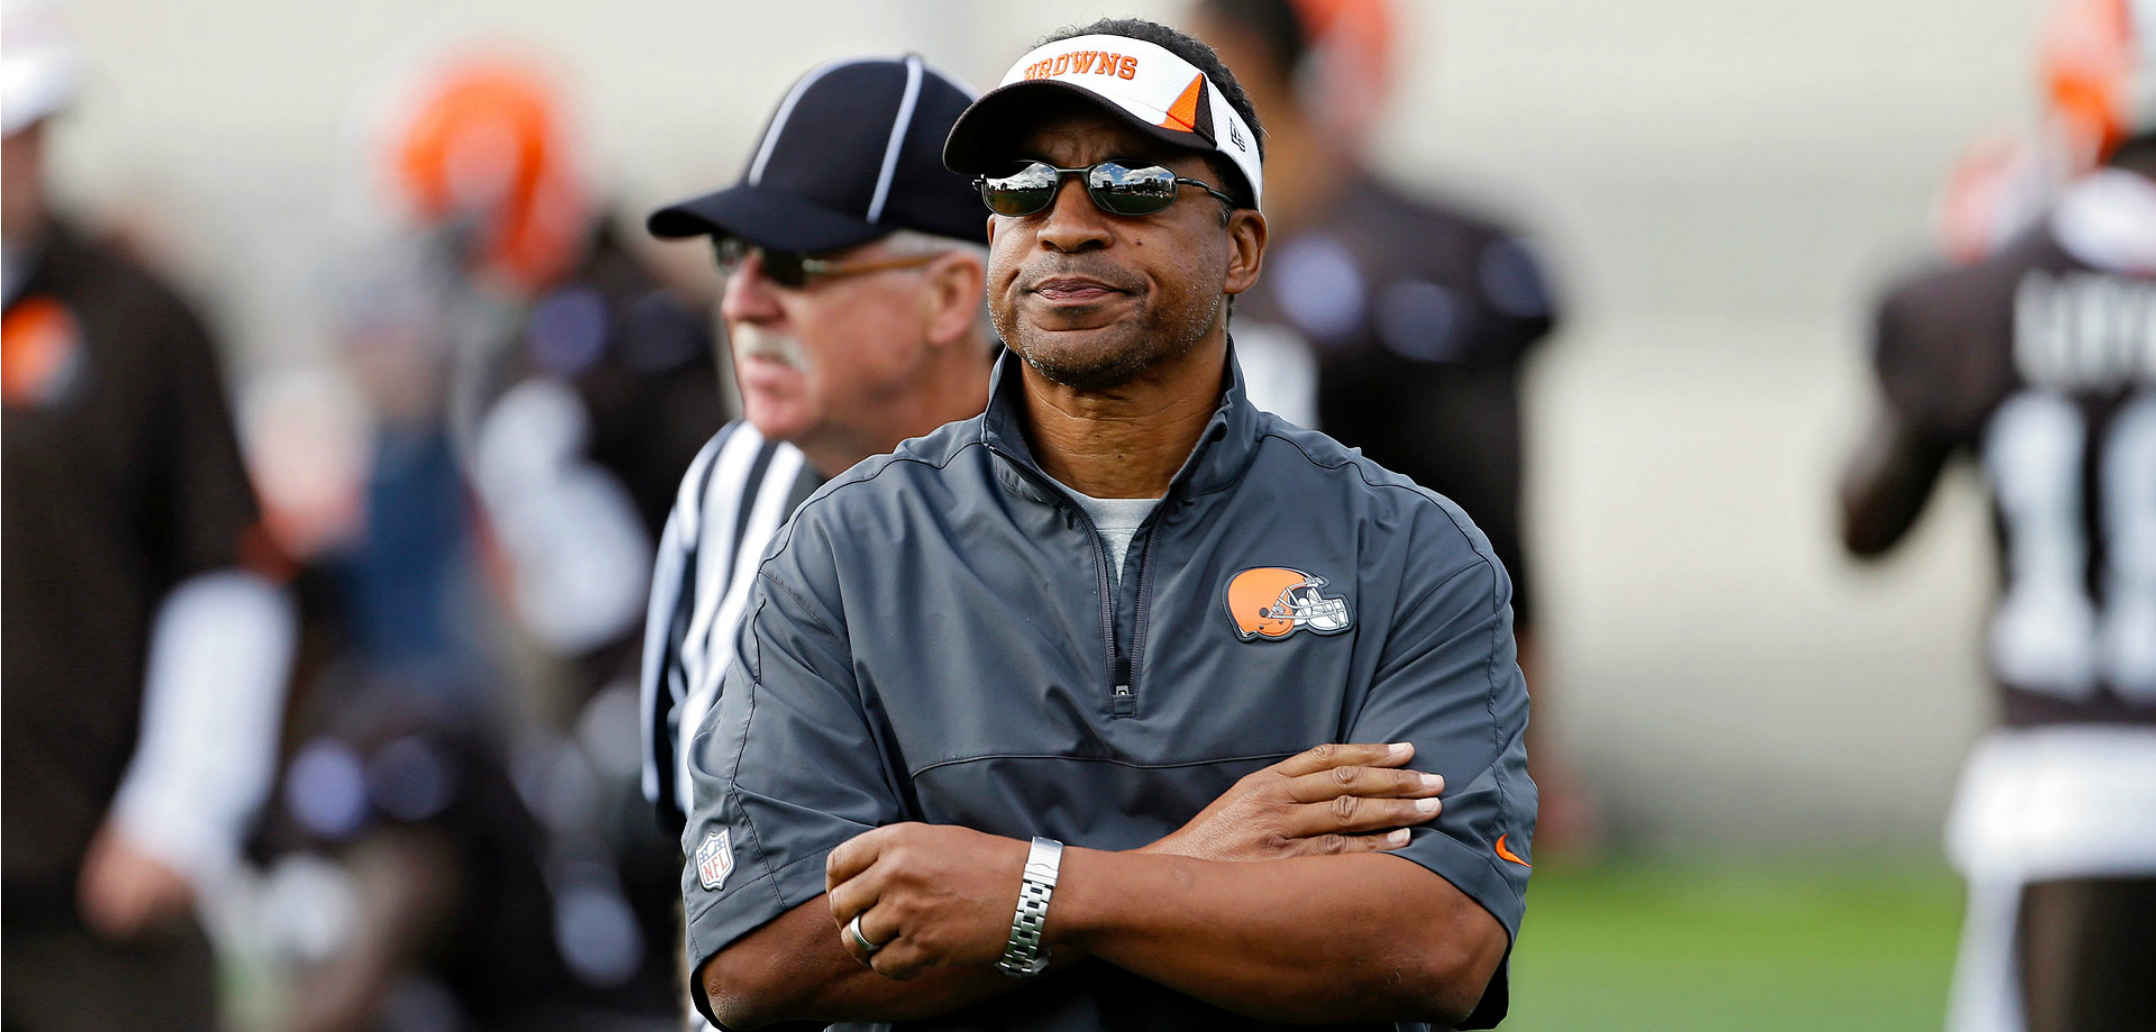 Courtesy of ESPN: Horton was prematurely fired as Browns defensive coordinator this offseason.